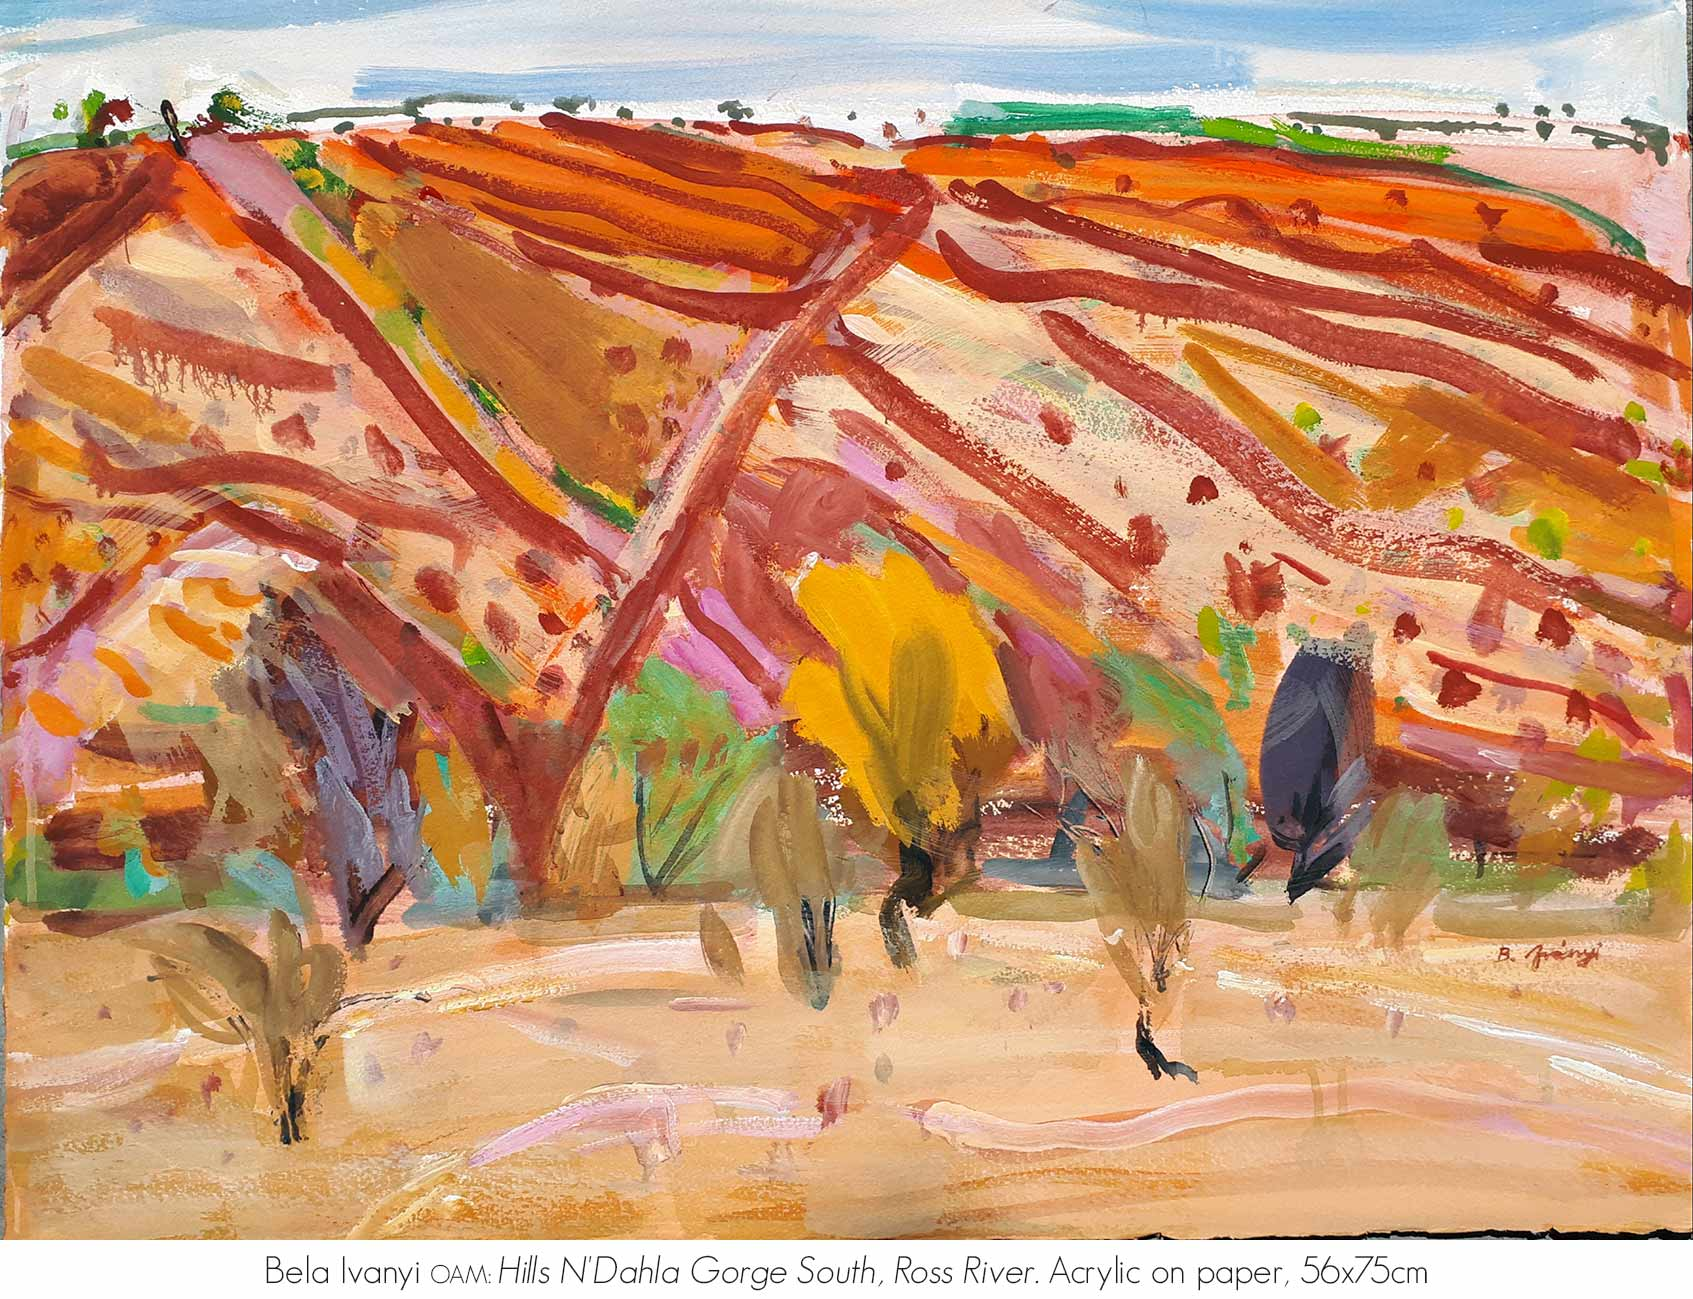 Artsite Galleries Exhibition | REFLECTIONS OF AN ANCIENT LAND: The MacDonnell Ranges | Bela Ivanyi. Exhibition is Open June - July 2020. Saturdays and Sundays 11am - 5pm and By Appointment Monday - Friday.